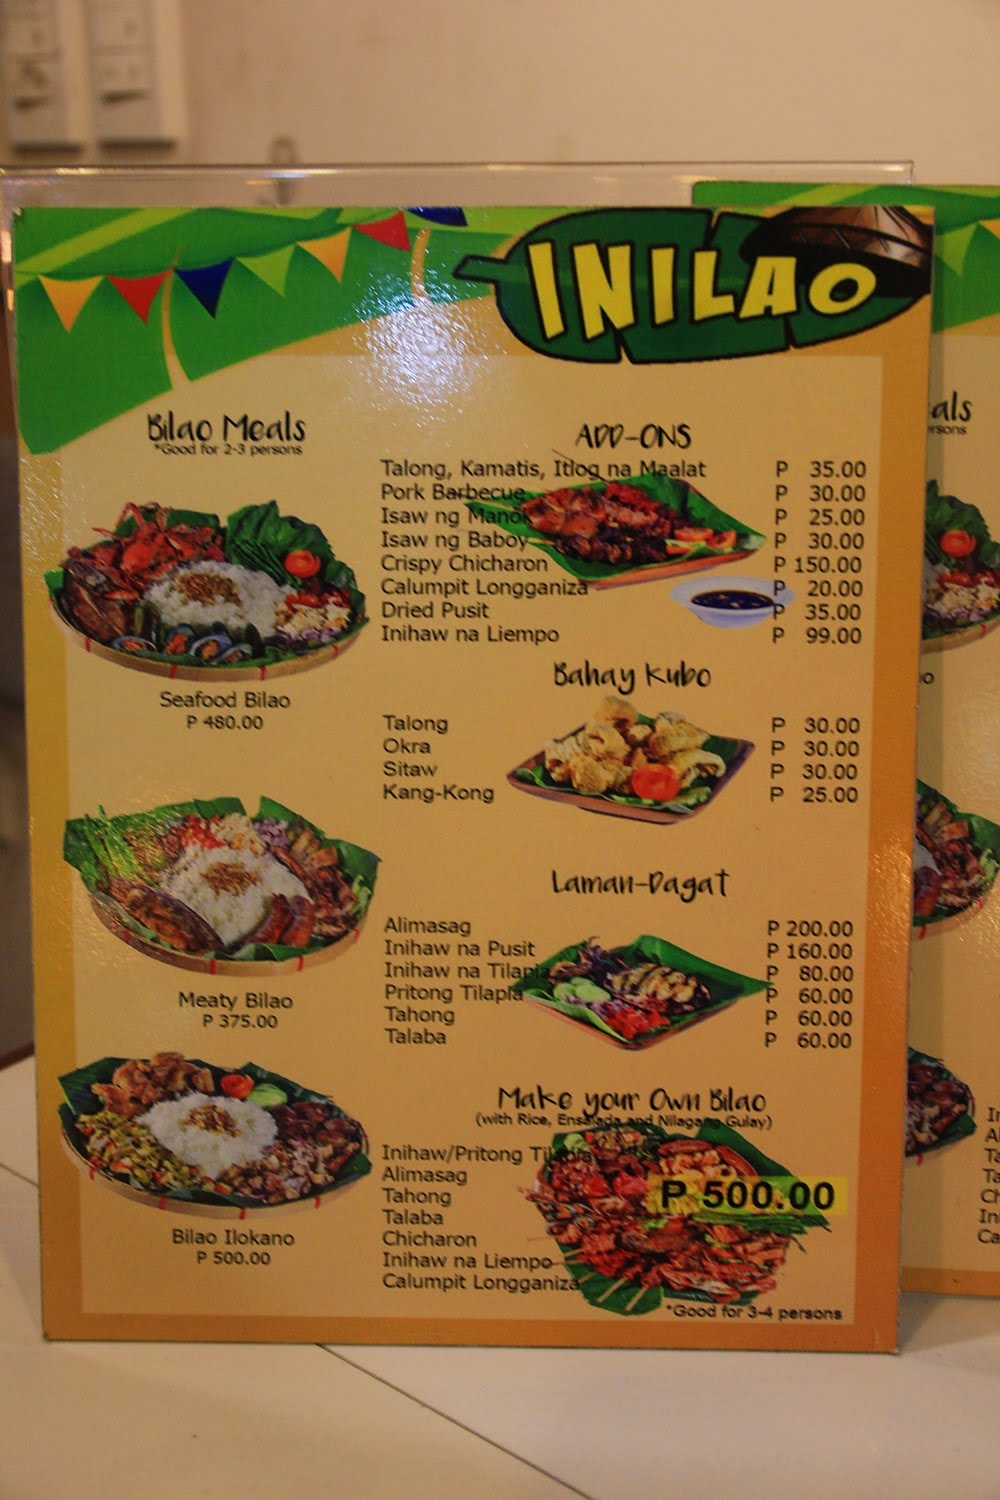 Inilao Bilao Meals Menu